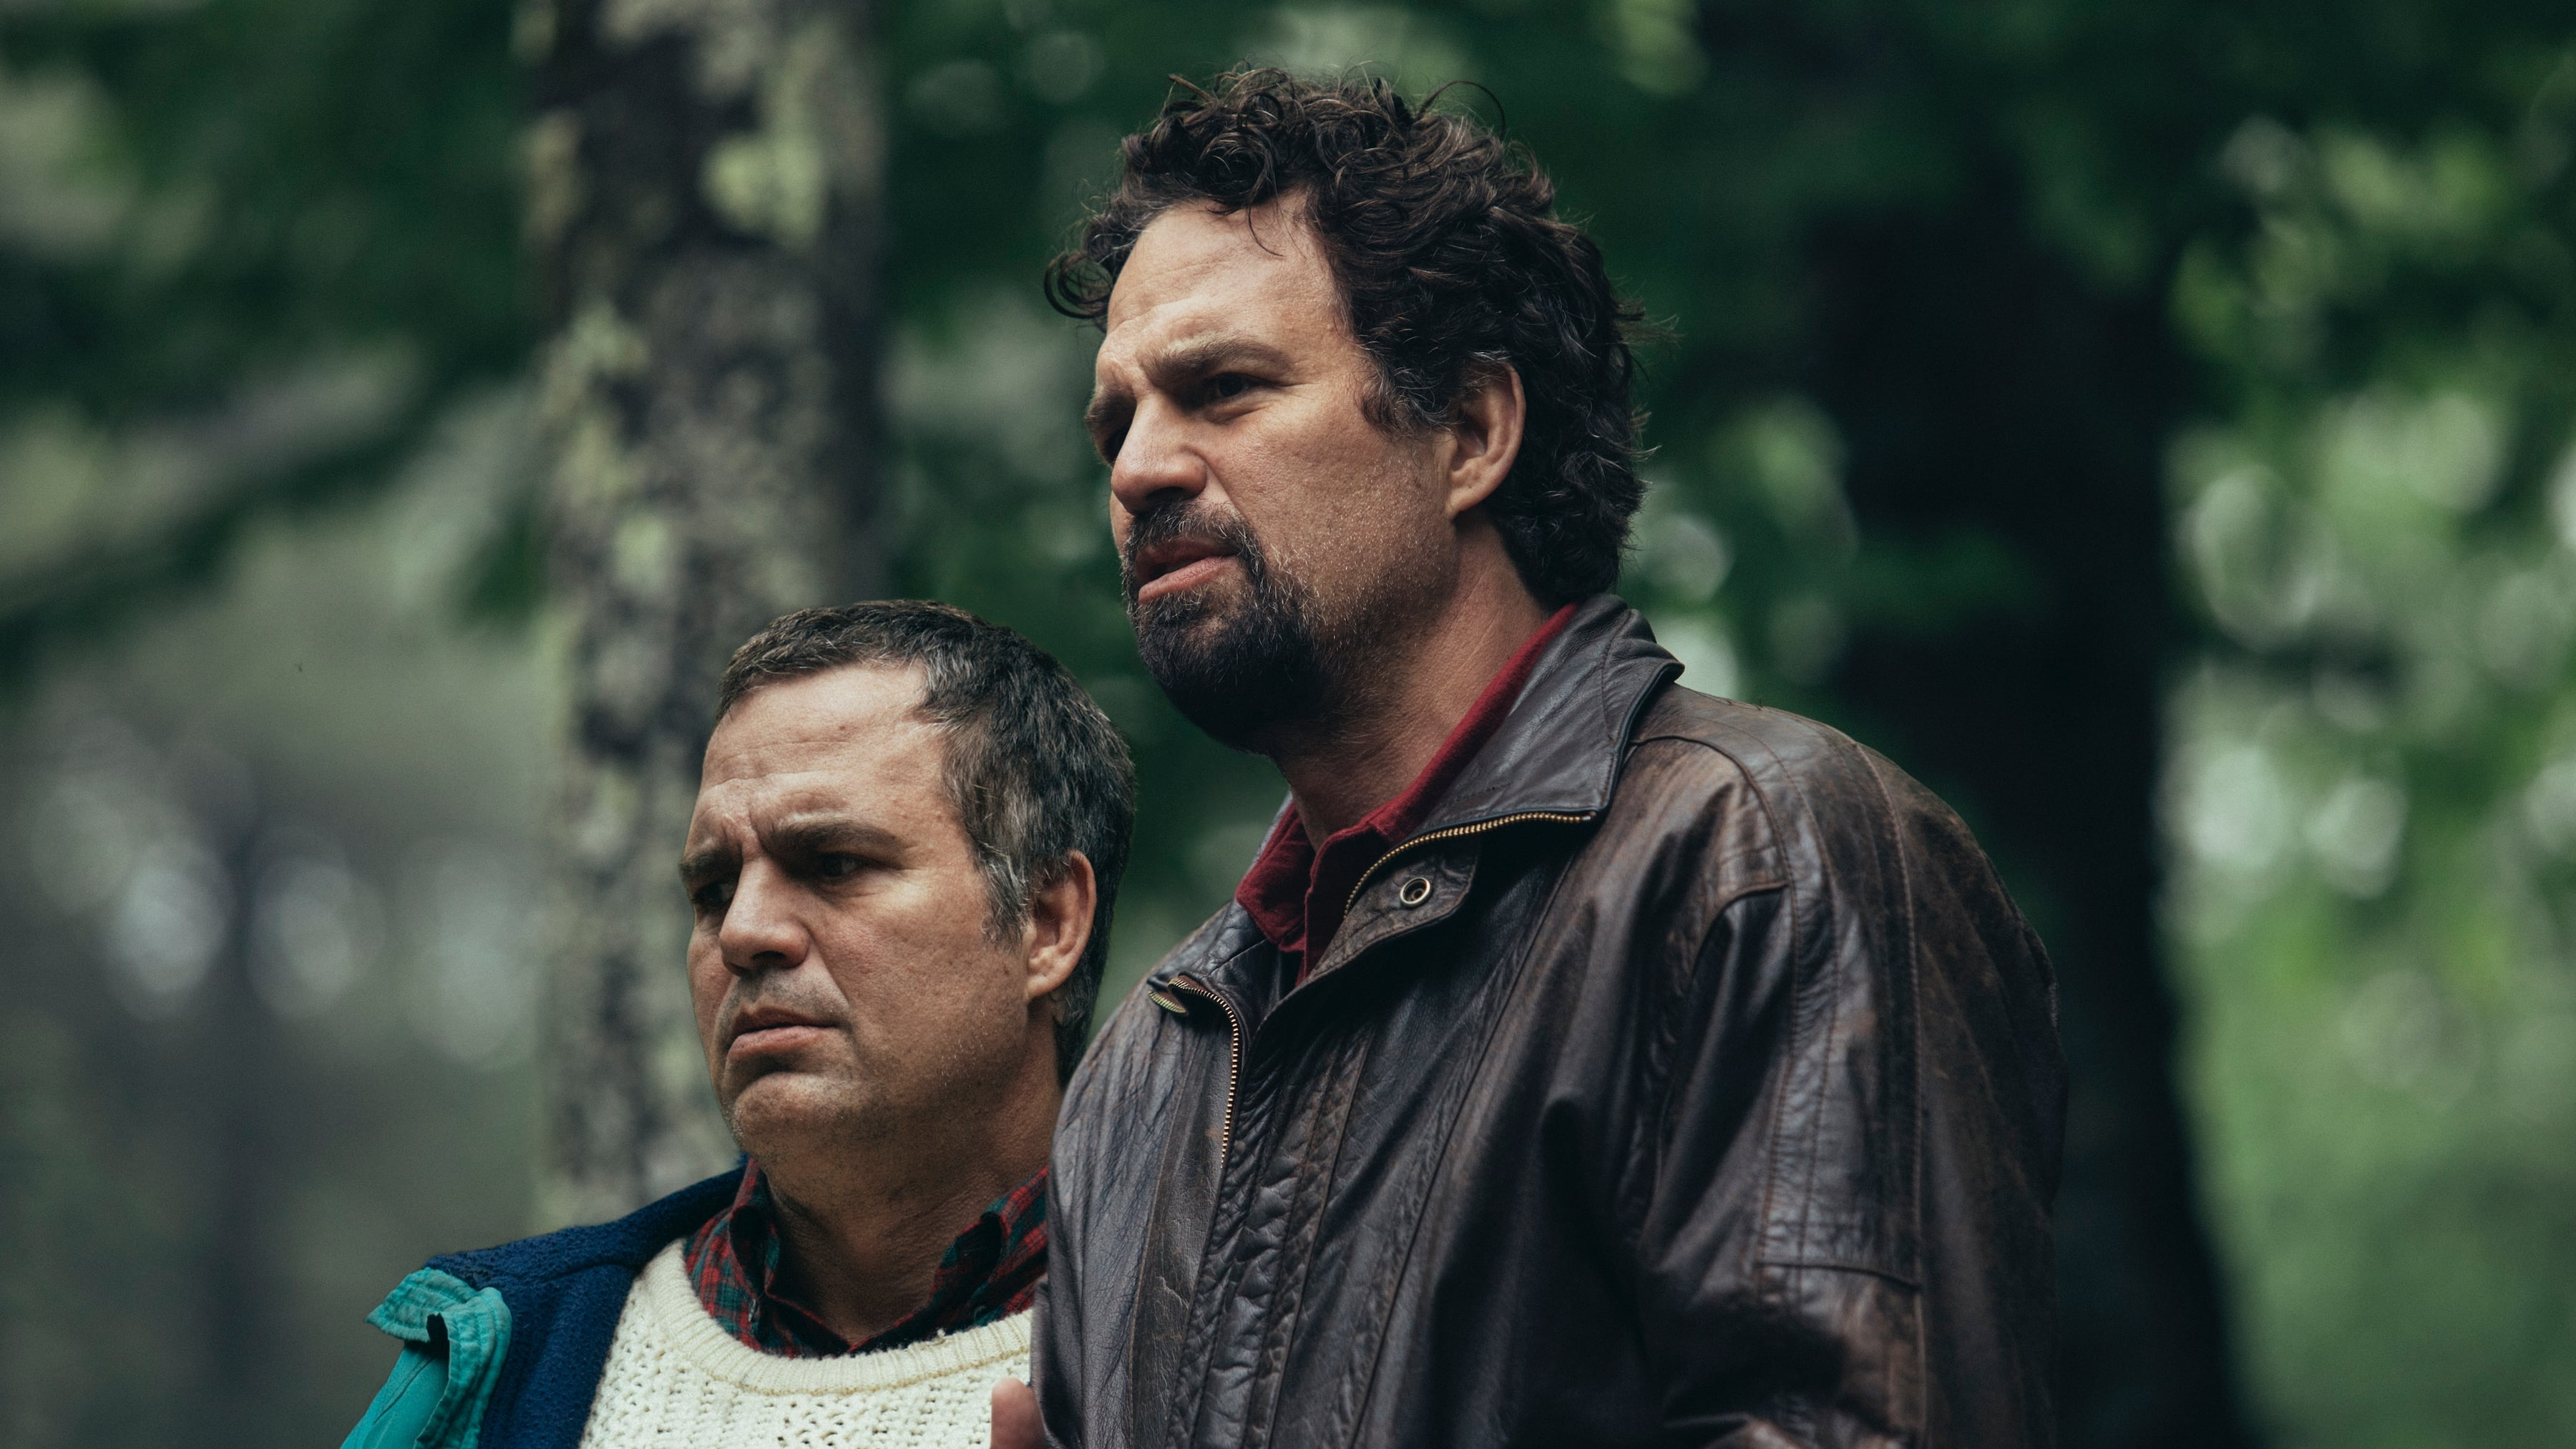 Trailer voor I Know This Much is True met Mark Ruffalo